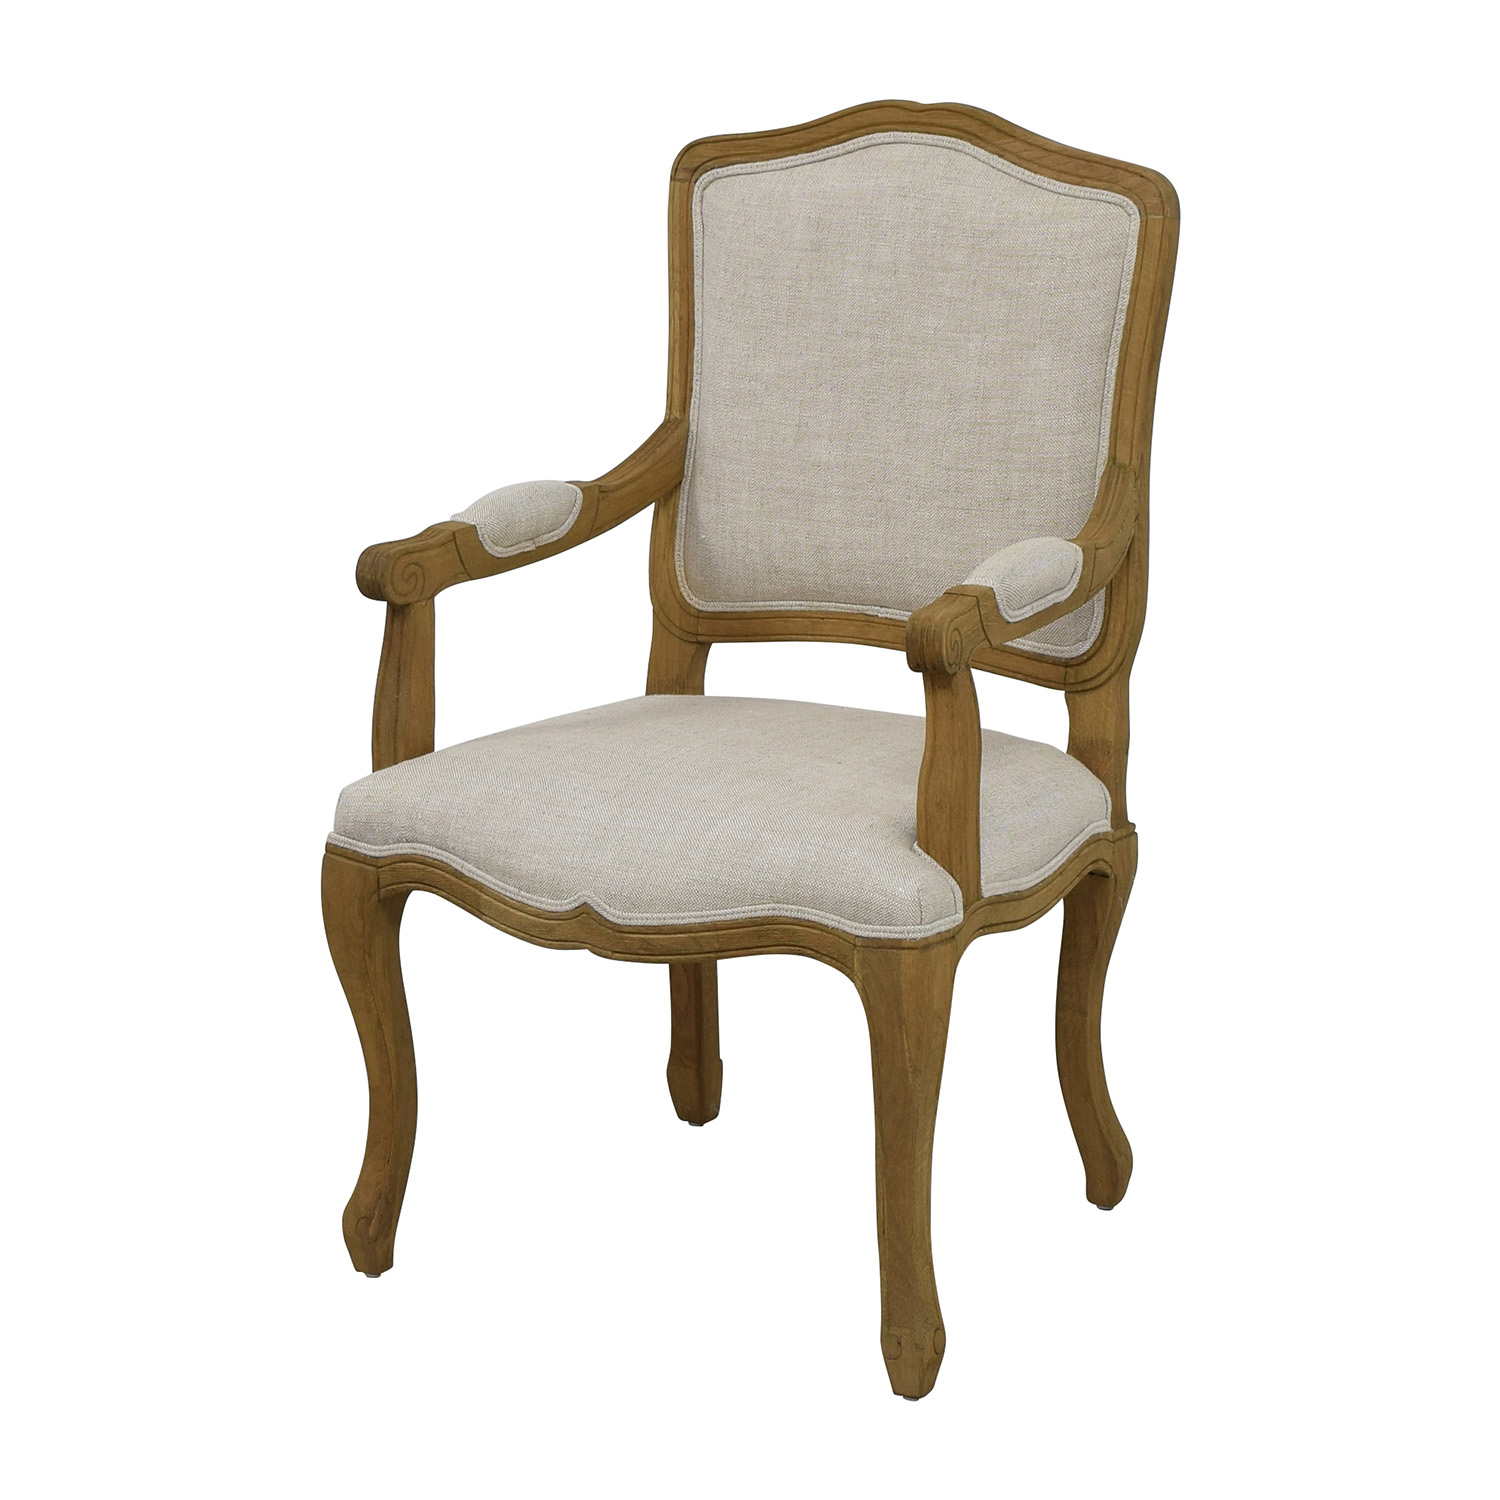 buy Restoration Hardware Restoration Hardware Vintage French Camelback Fabric Armchair online